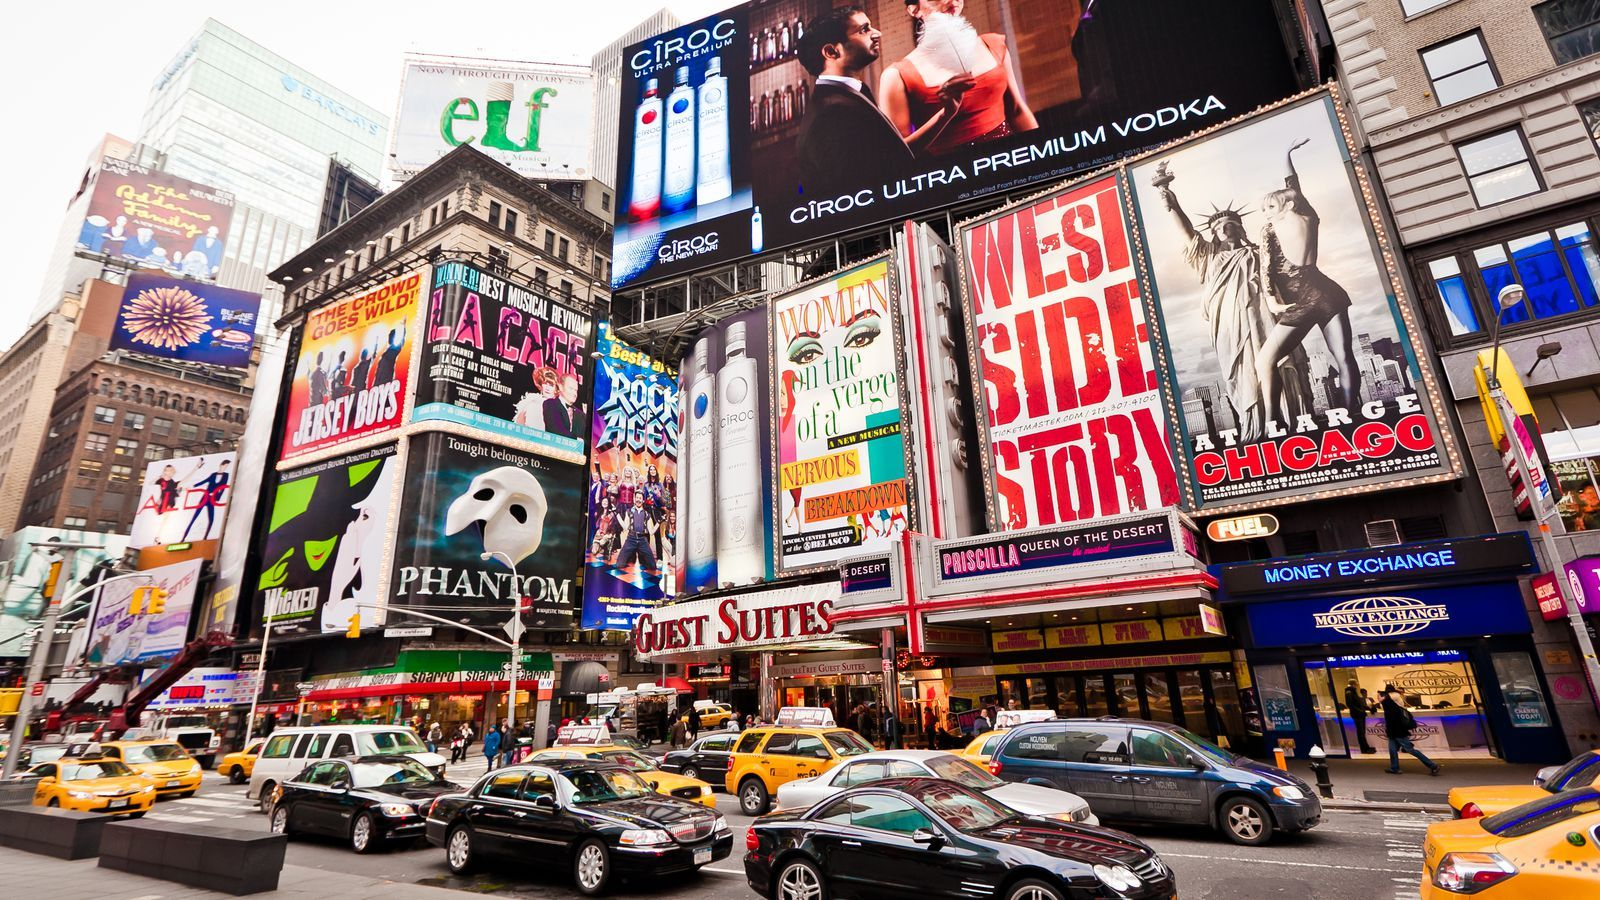 Goodfood The Definitive Guide To Theater District Dining Foo